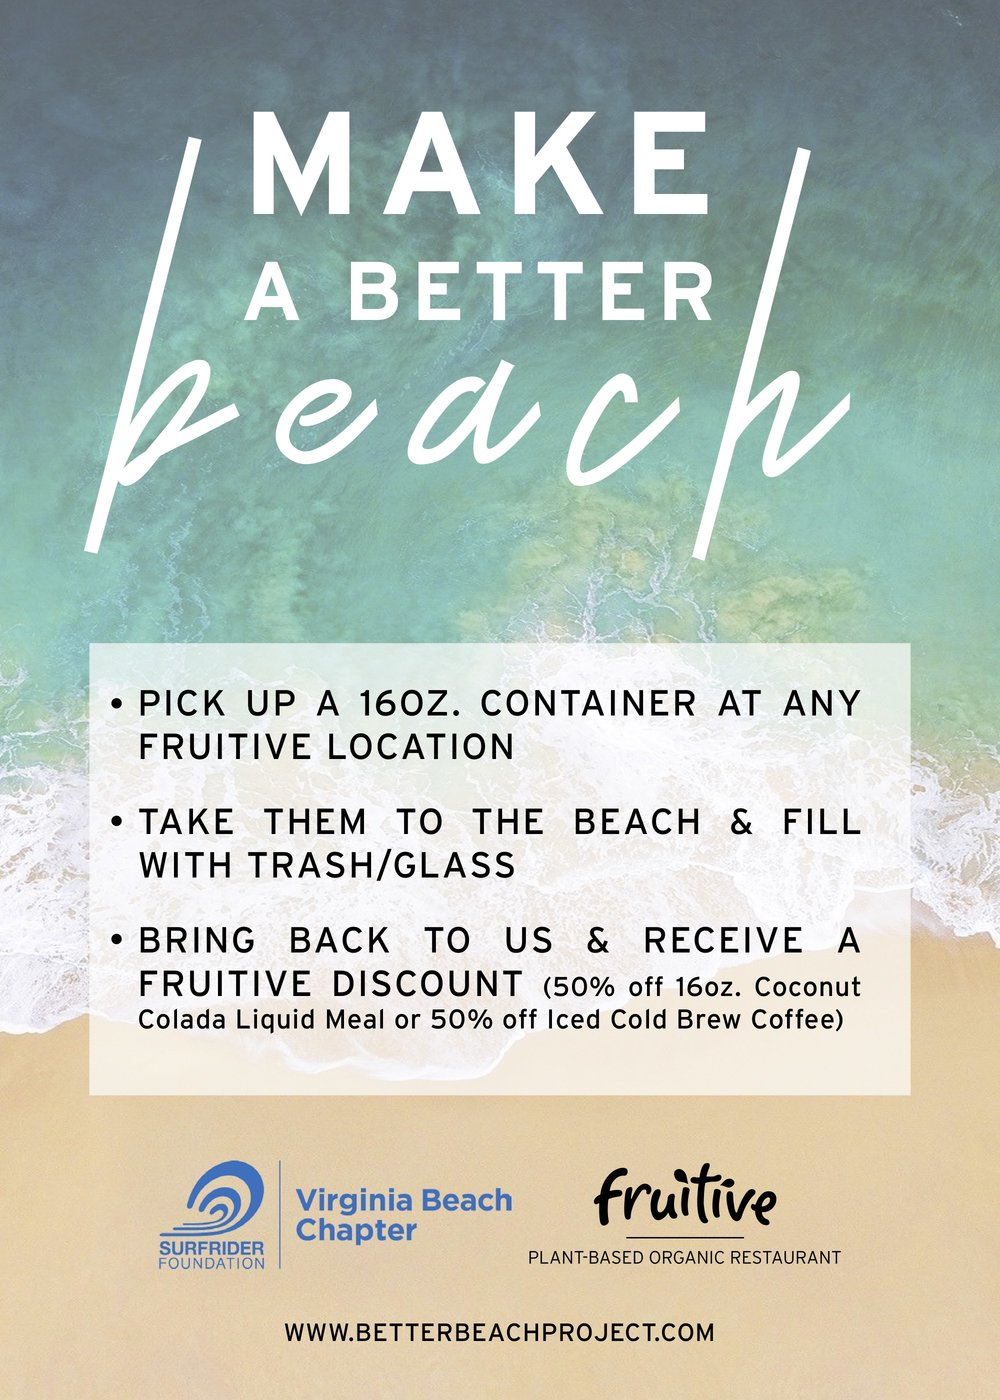 Better Beach Project - All three of our Hampton Roads locations will be participating in the Better Beach Project starting next week through August. Customers can grab a container from us or use their liquid meal cups or juice jars to fill up with trash. We will have flyers in each store, but don't be afraid to encourage customers to get involved! To learn more, visit www.betterbeachproject.com.